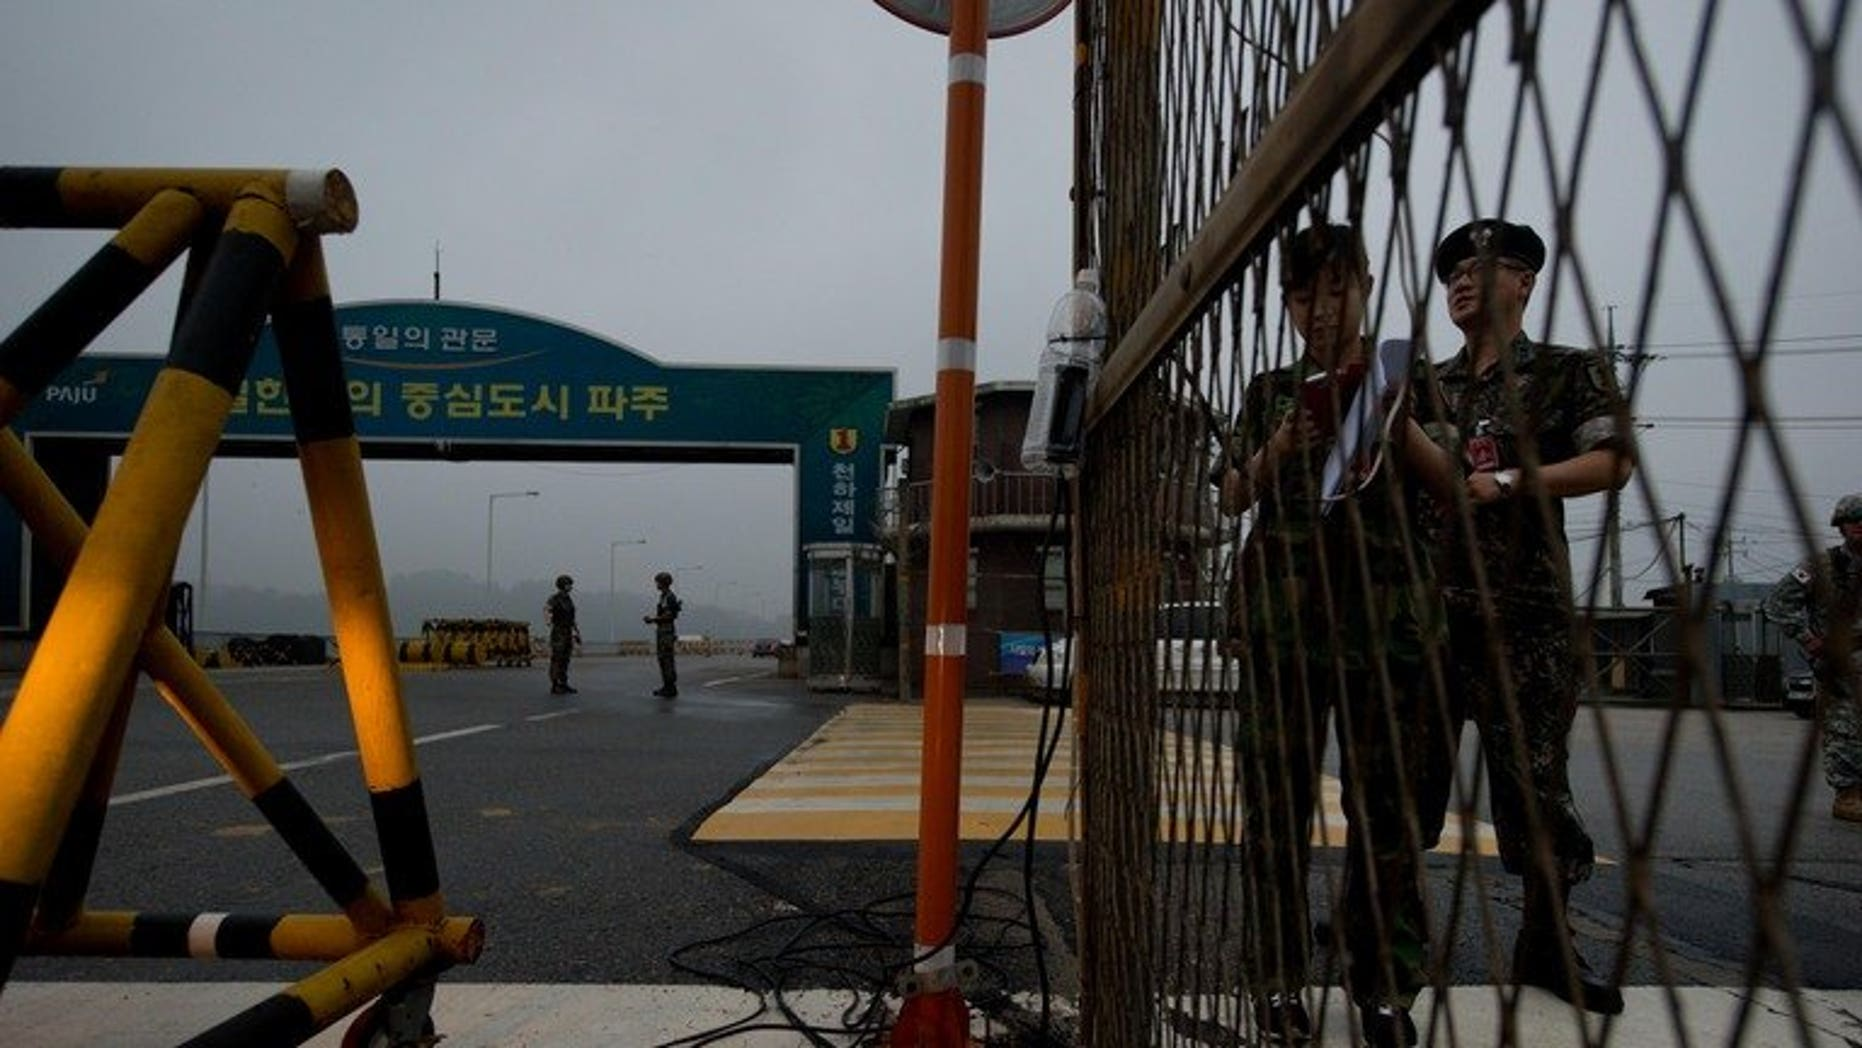 South Korean soldiers stand at a military checkpoint leading to North Korea's Kaesong joint industrial complex, in the border city of Paju early on July 10, 2013. North and South Korea will hold fresh talks Wednesday on reopening their joint industrial zone as hopes of an early agreement fade following months of friction.